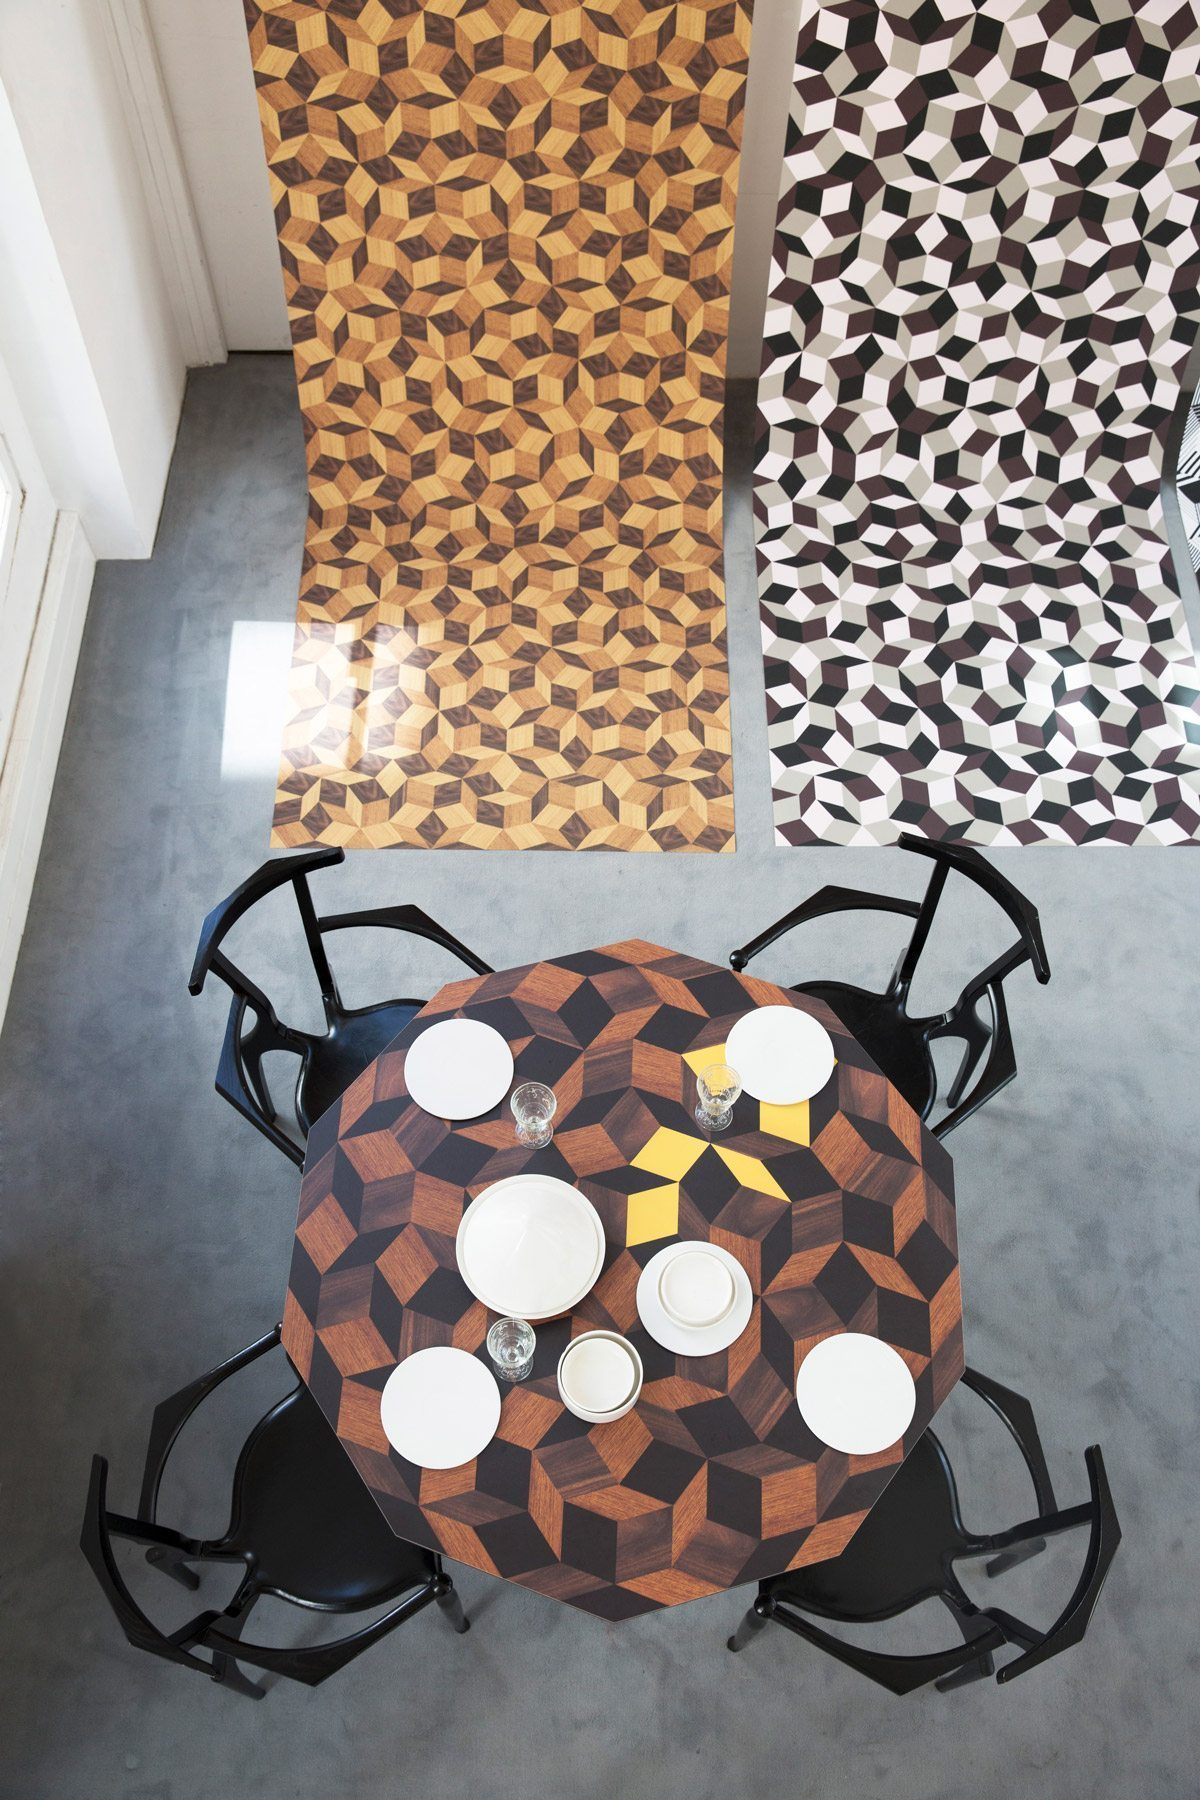 Exposition Penrose Project, Ich&Kar - Bazartherapy, Paris Design Week 2015, table à manger Summer Wood au motif géométrique, restaurant Le Derrière